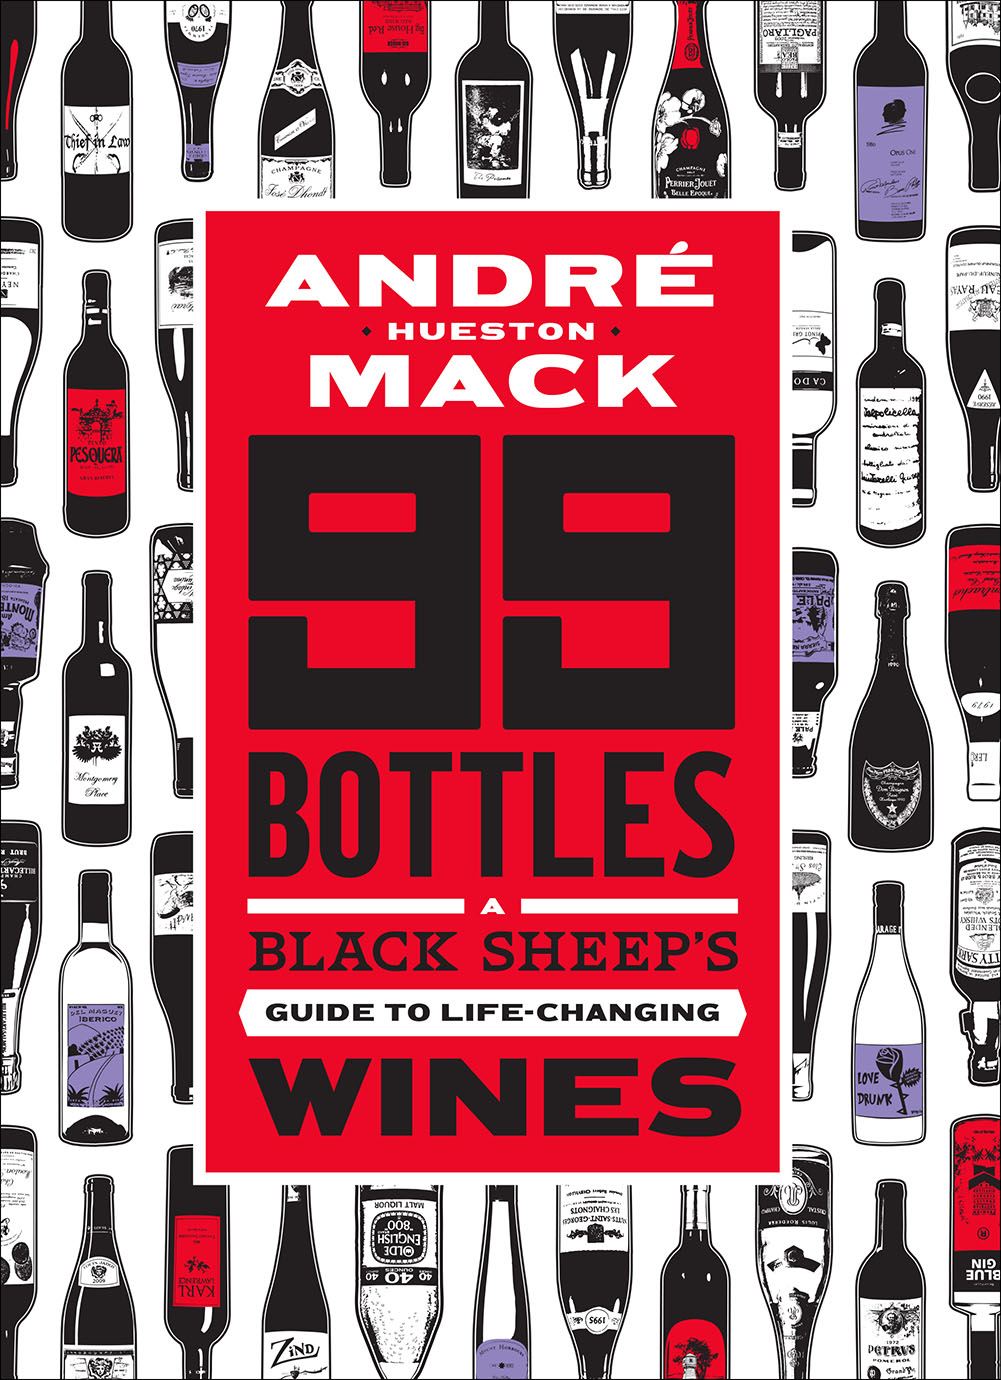 99 Bottles: The Wines That Changed My Life (and Can Change Yours Too)